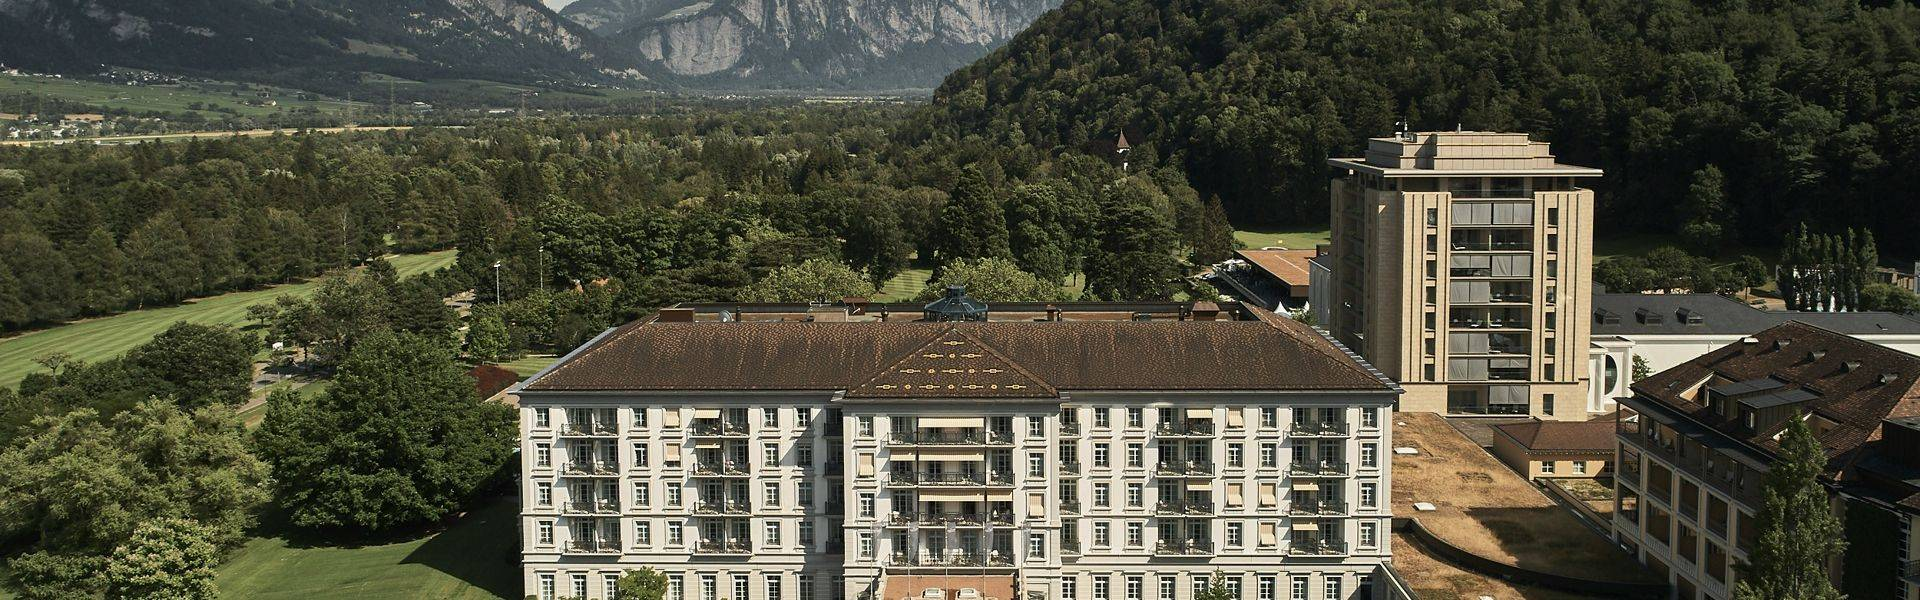 Grand Resort Bad Ragaz_Exterior View.jpg